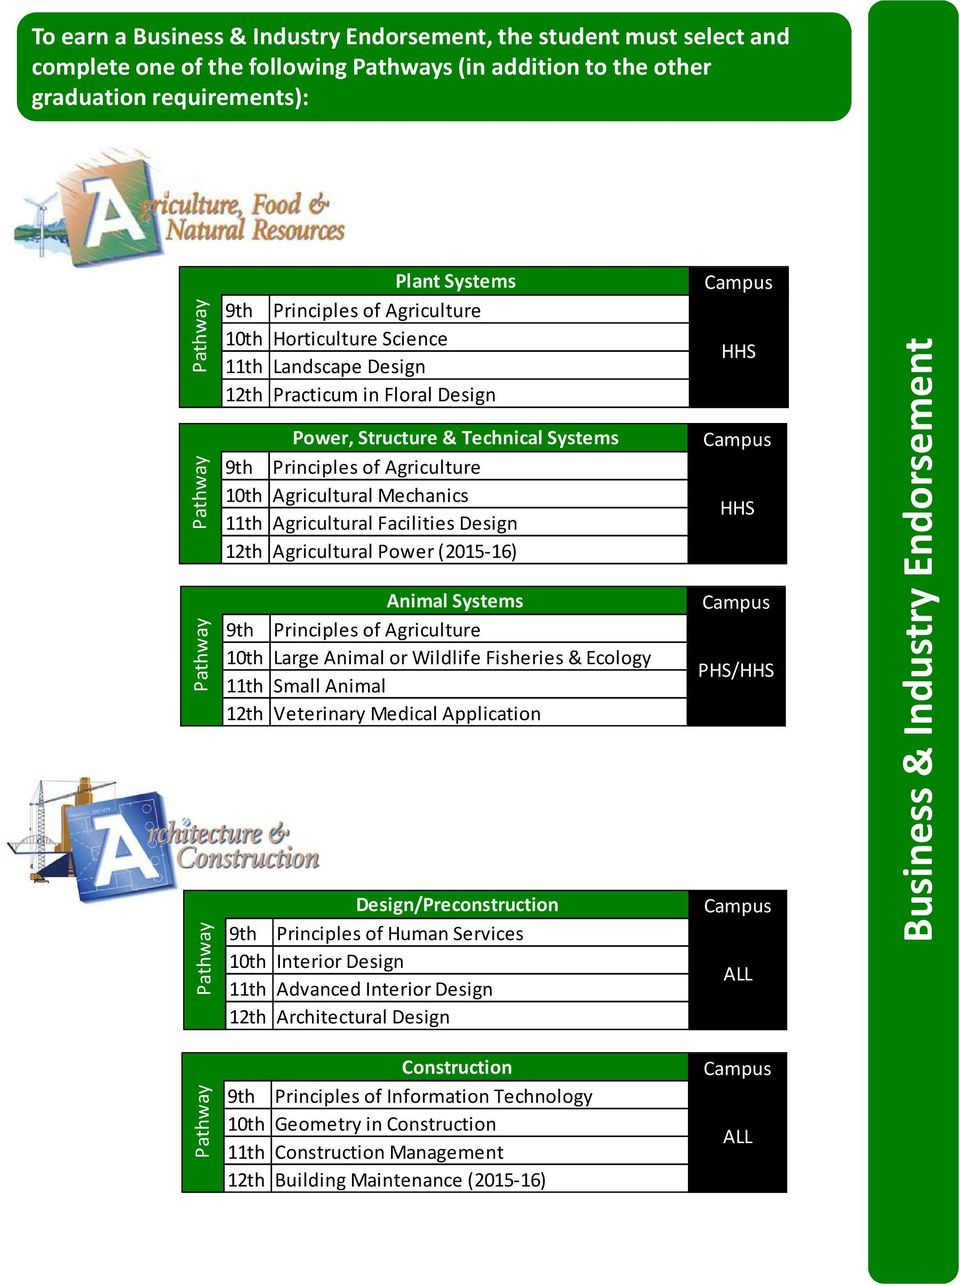 Facilities Design 12th Agricultural Power (2015-16) Animal Systems 9th Principles of Agriculture 10th Large Animal or Wildlife Fisheries & Ecology 11th Small Animal 12th Veterinary Medical